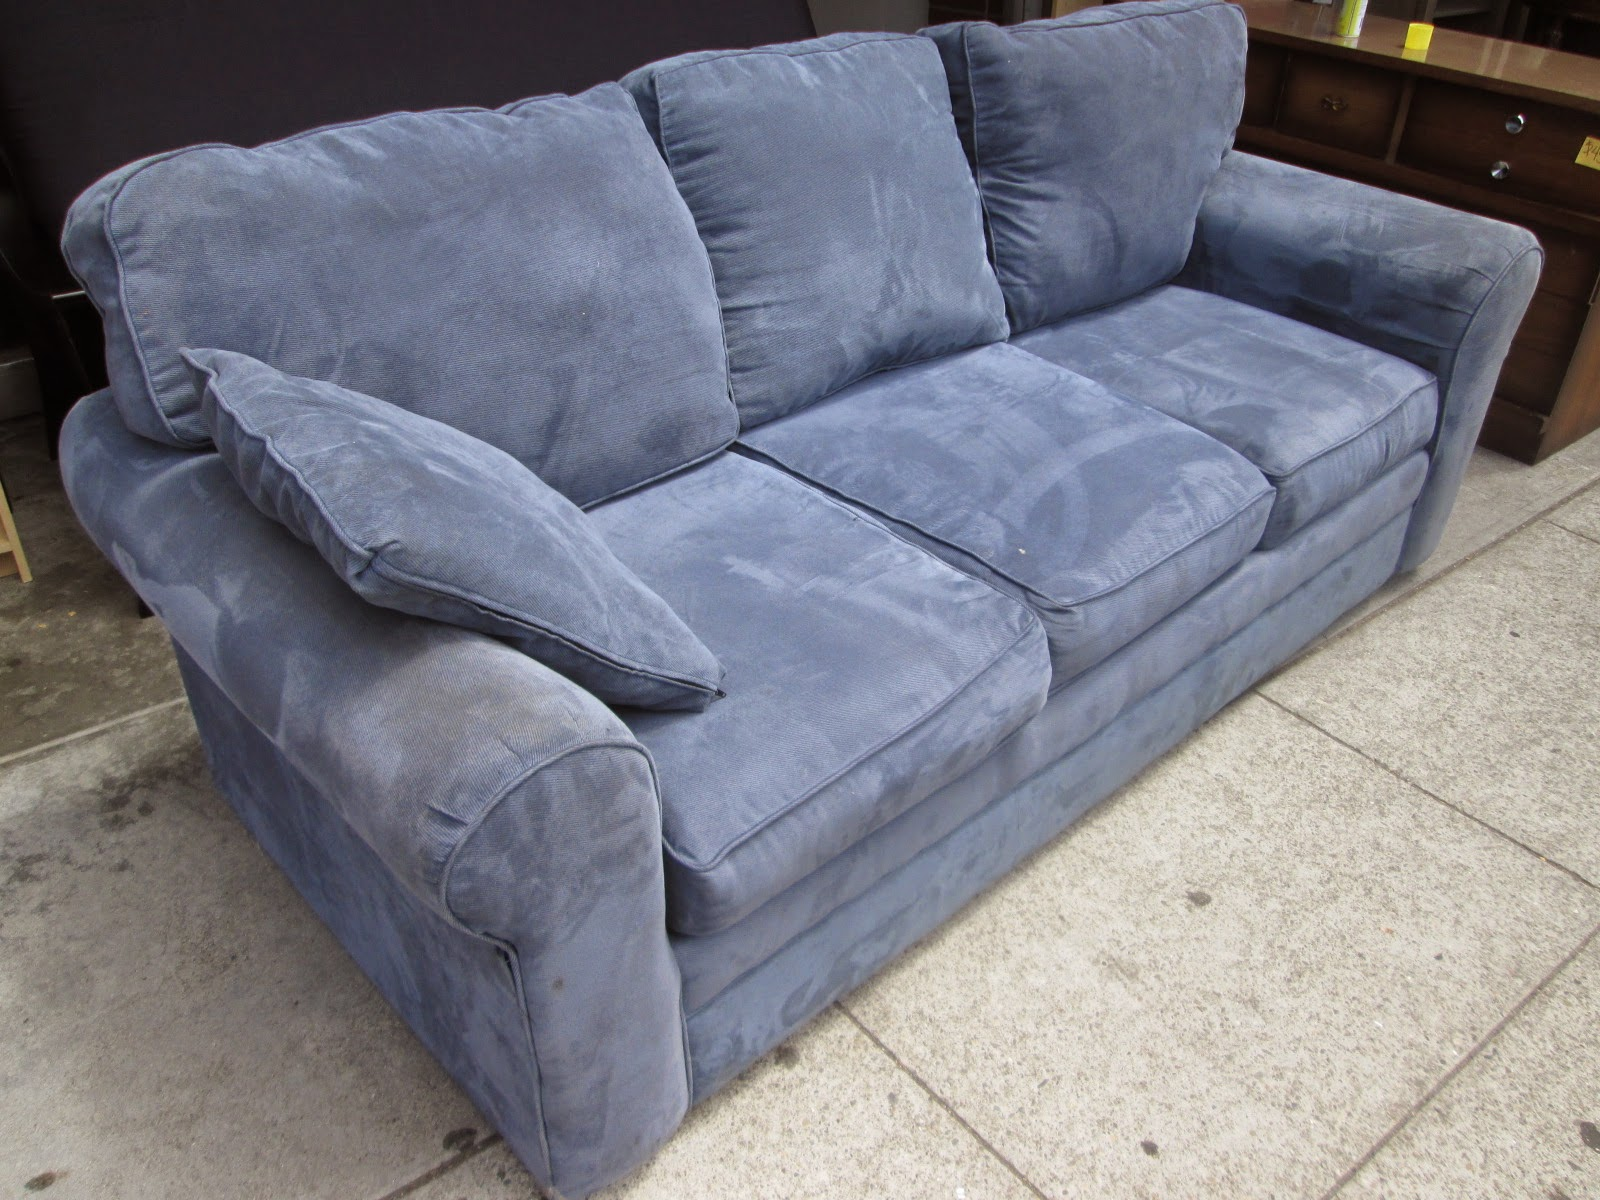 Uhuru Furniture Amp Collectibles Sold Blue Corduroy Sofa 115